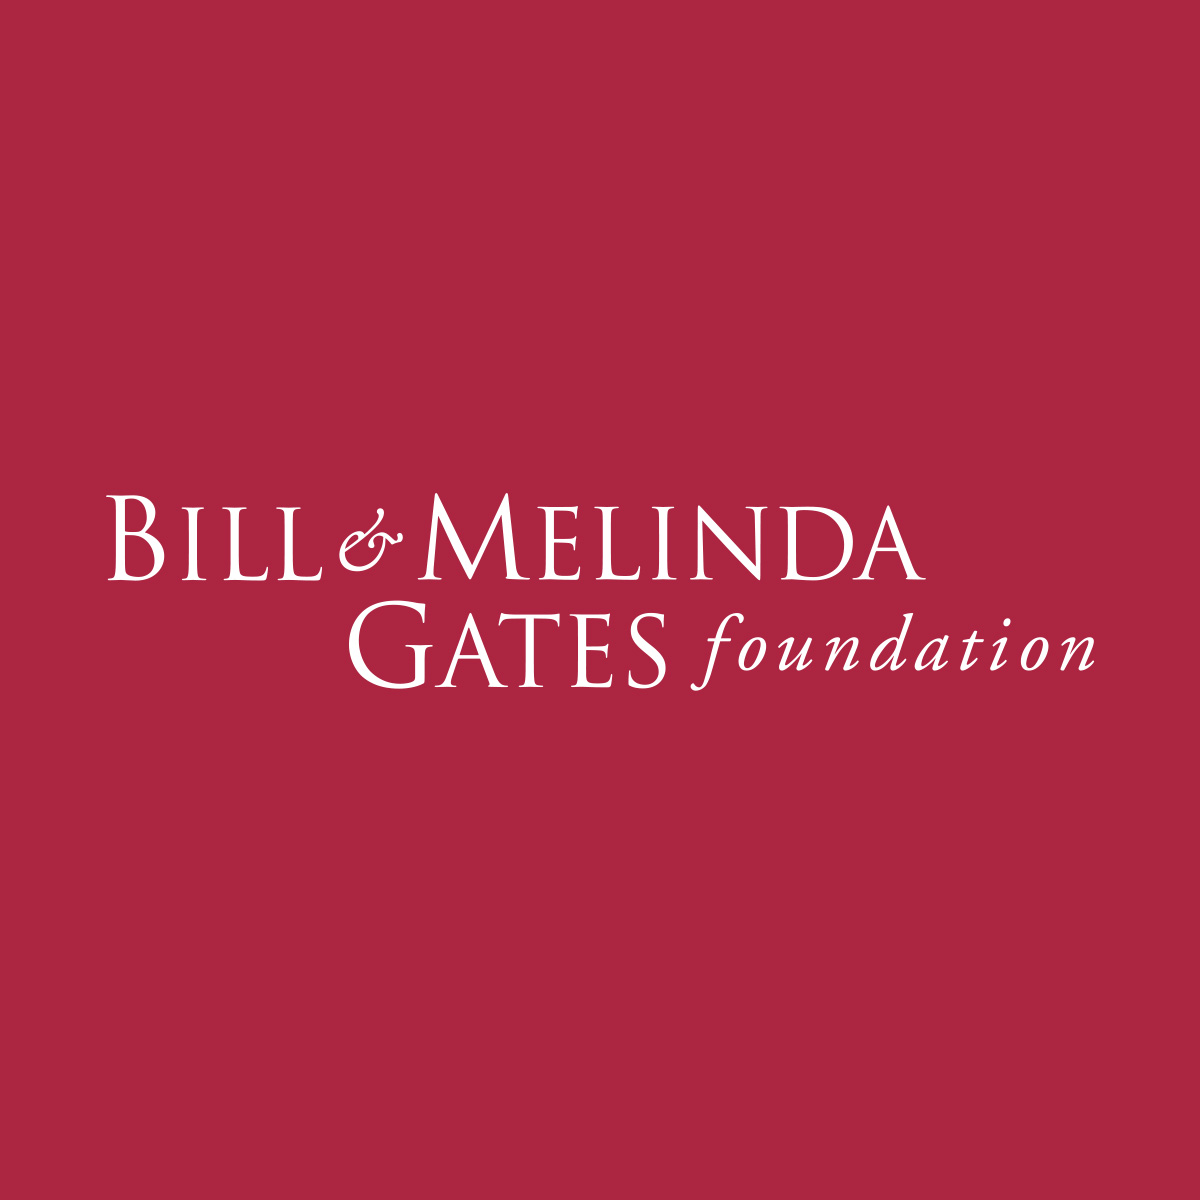 Bill and Melinda Gates Foundation | IHE Delft Institute for Water Education